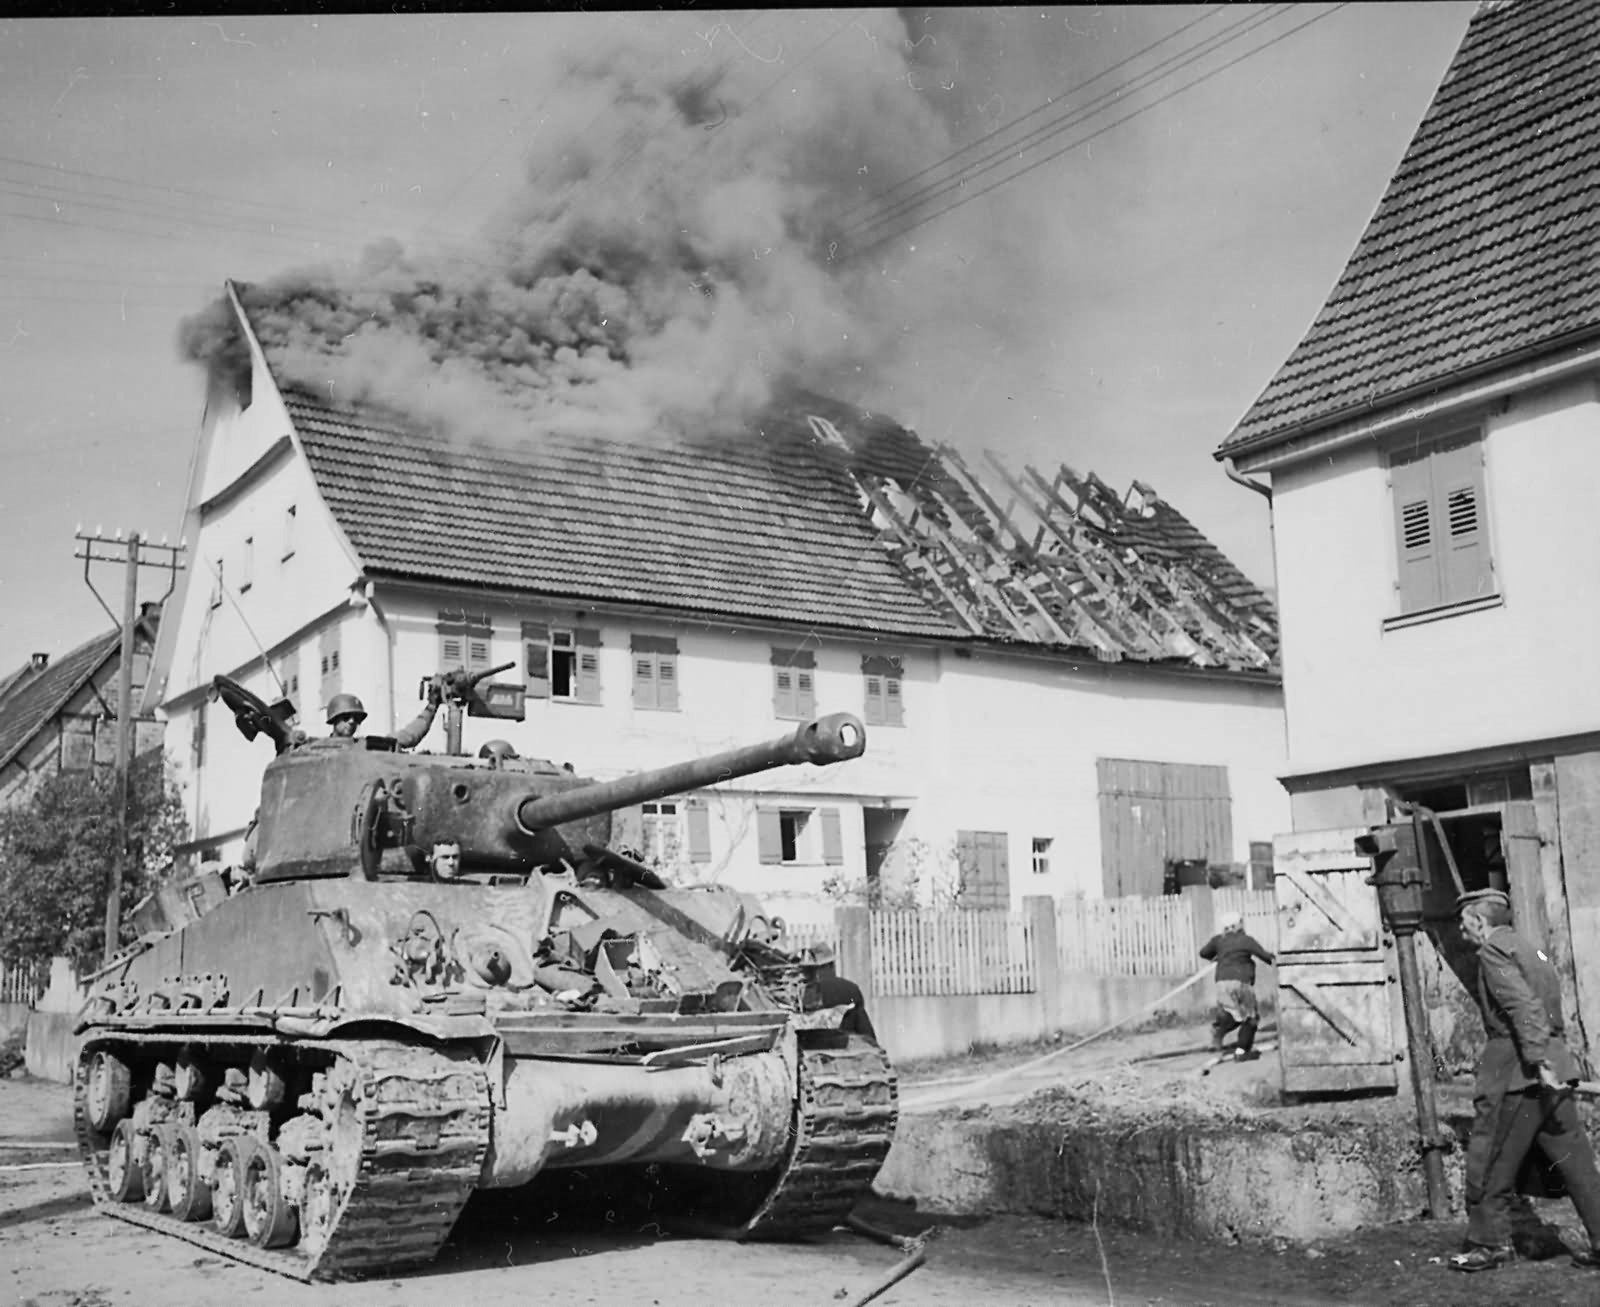 M4A3E8_Sherman_HVSS_with_76mm_gun_10th_Armored_Division_Rosswalden_Germany_1945